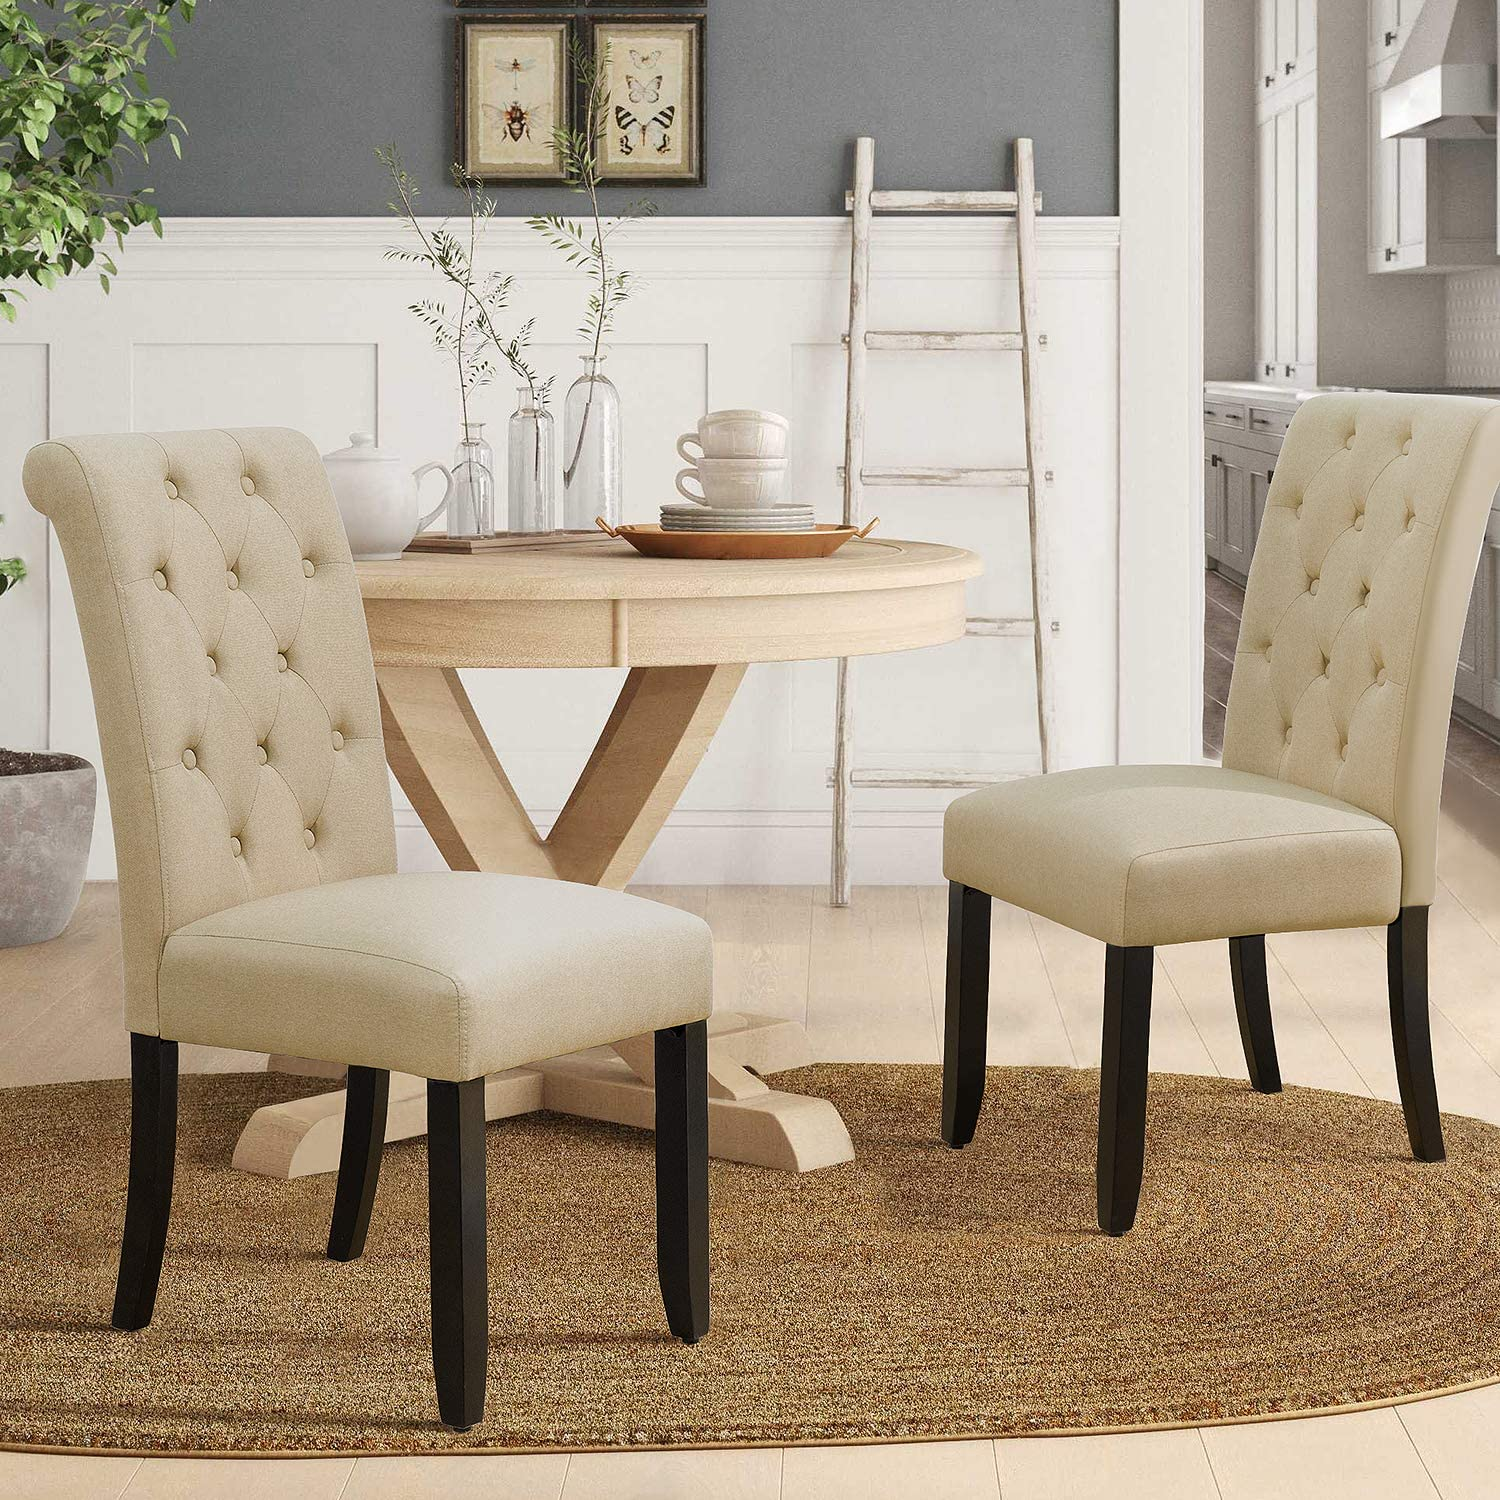 Amazon Com Furmax Dining Chairs Luxurious Tufted Fabric Parson Chair Side Chair With Solid Wood Legs Tall Back Set Of 2 Beige Chairs